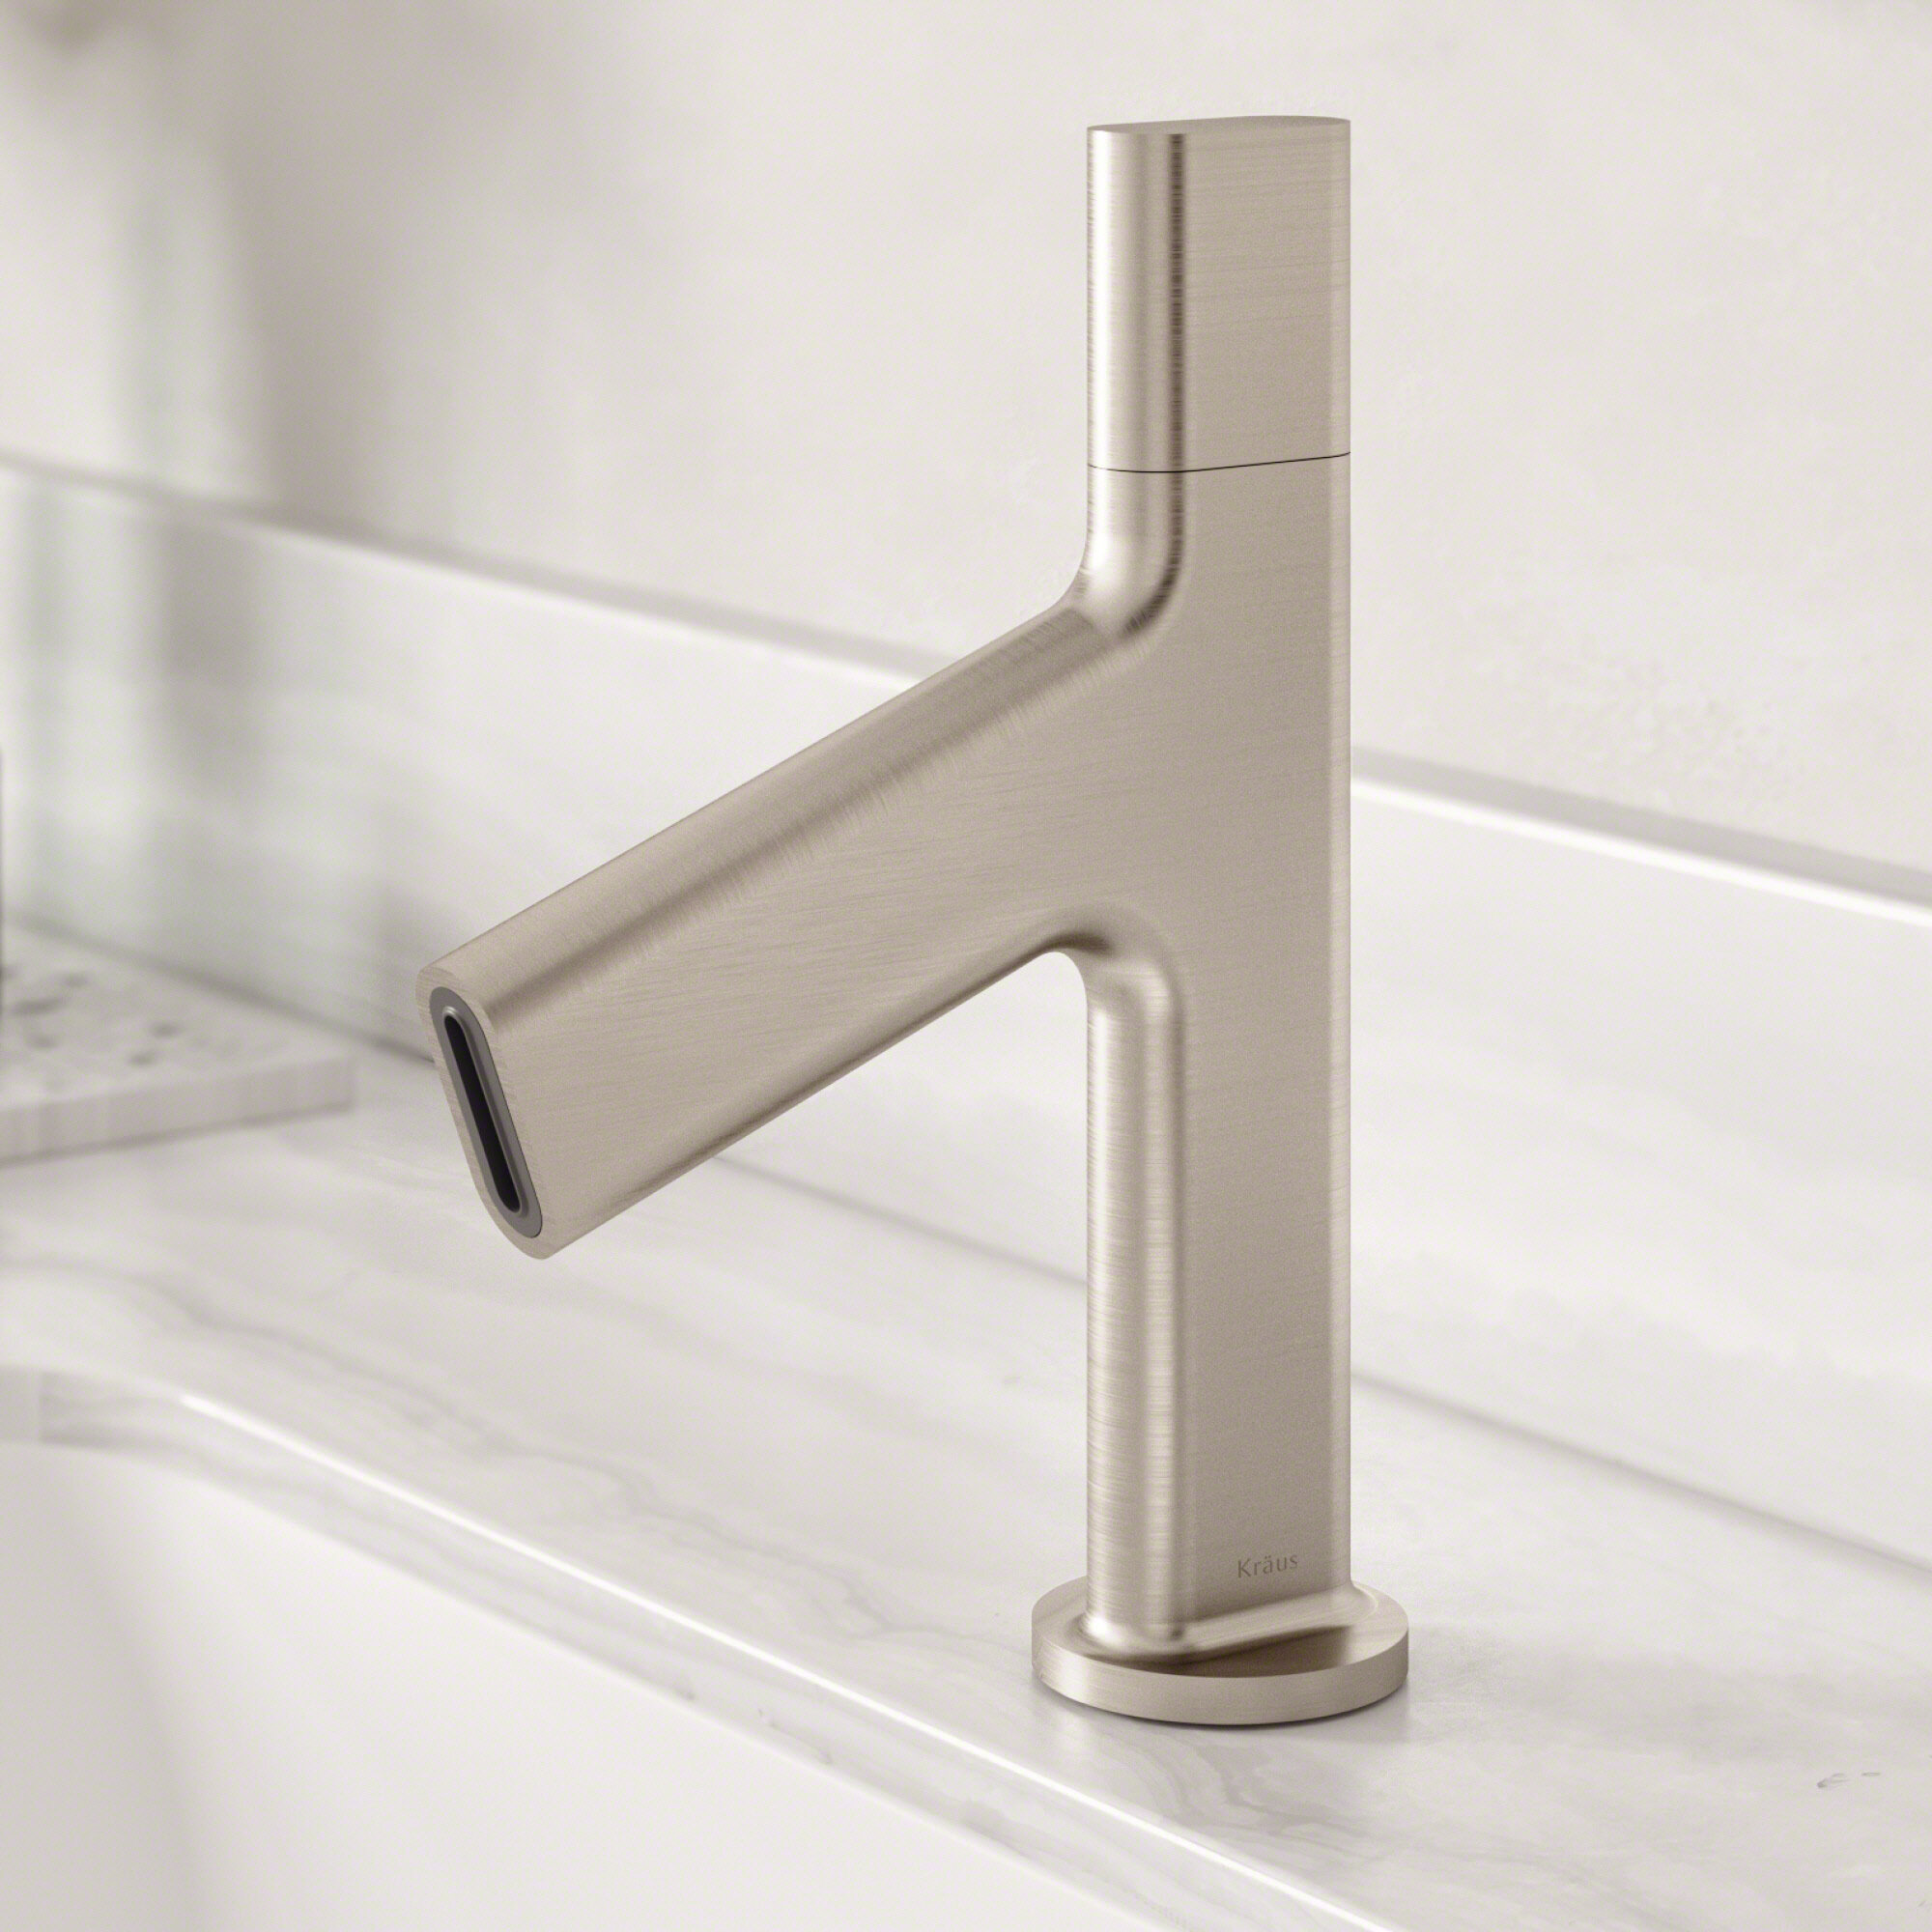 Kraus Ino™ Single Hole Bathroom Faucet & Reviews | Wayfair